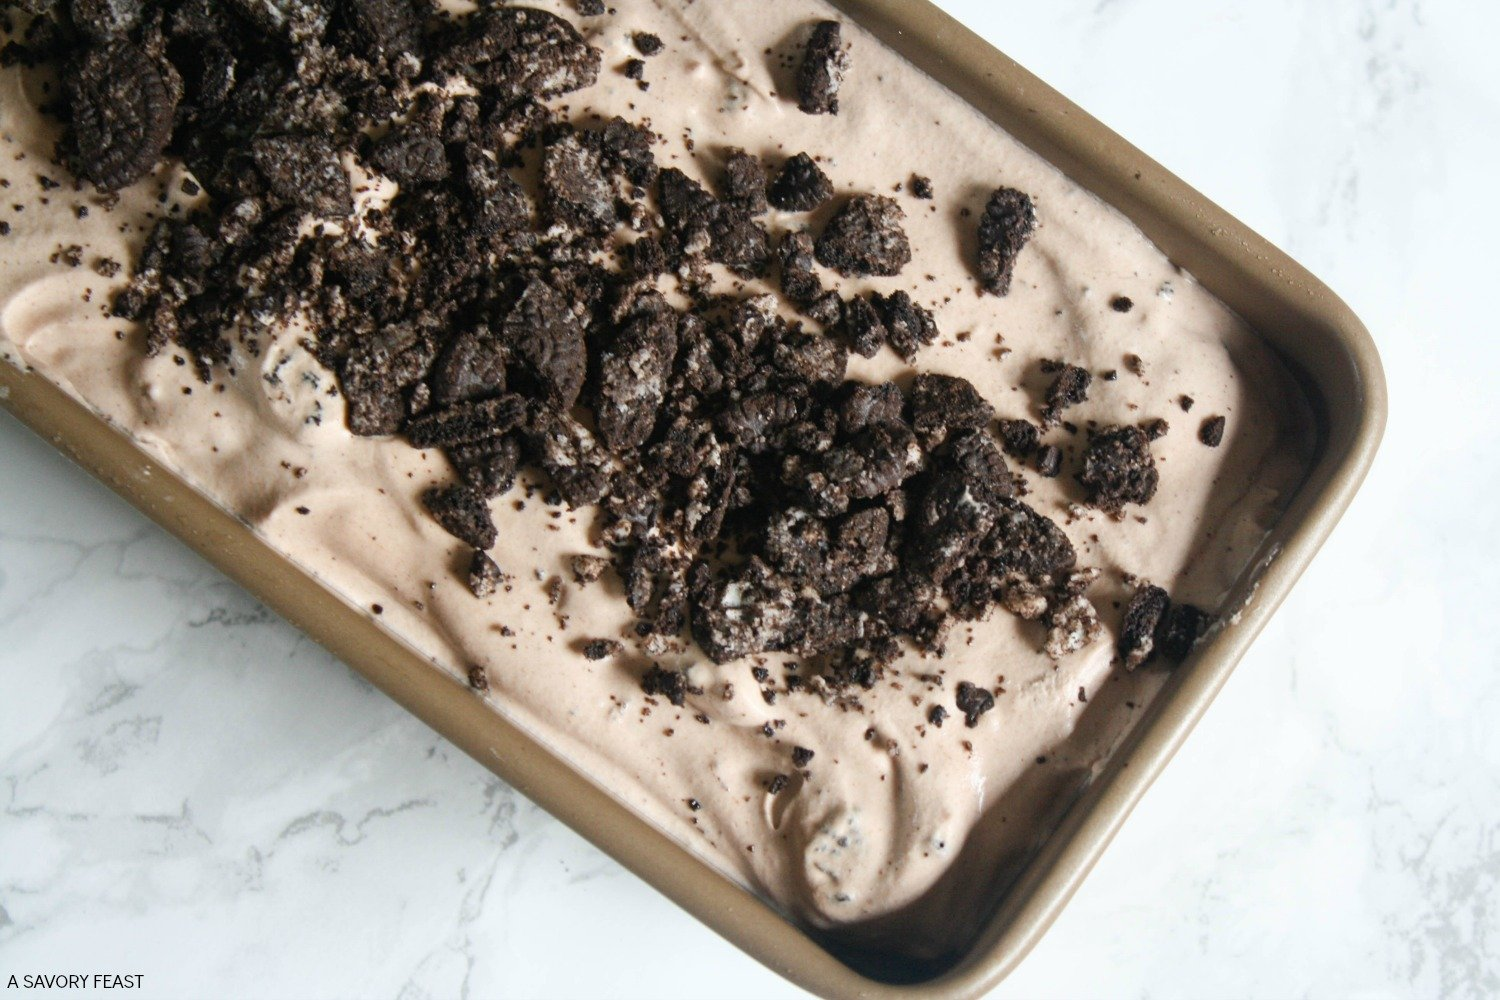 Have you tried no churn ice cream yet? It's so easy to make without a machine! This Chocolate Cookies 'n Cream No Churn Ice Cream is a rich, creamy treat that any chocolate lover will go crazy for.